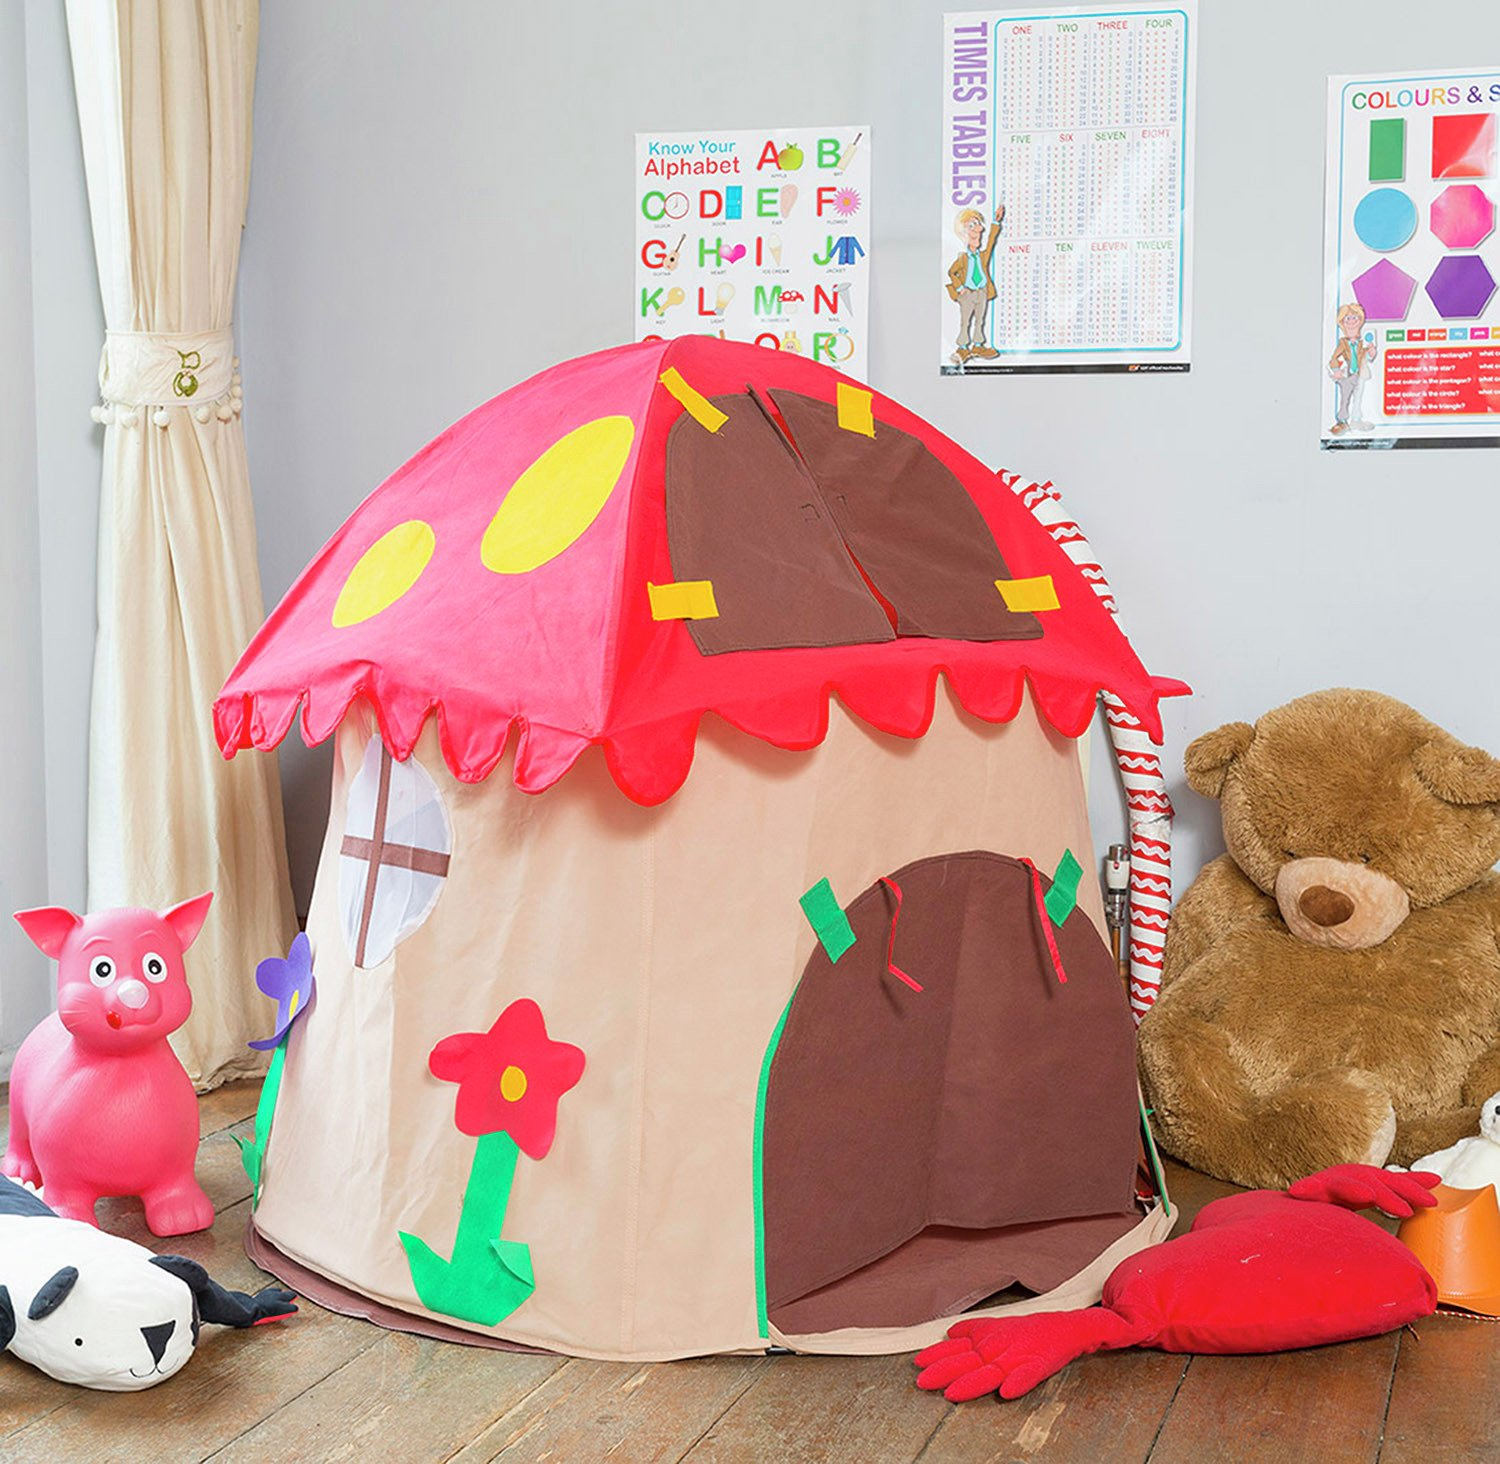 Image of Bazoongi - Special Edition Mushroom House Play Tent